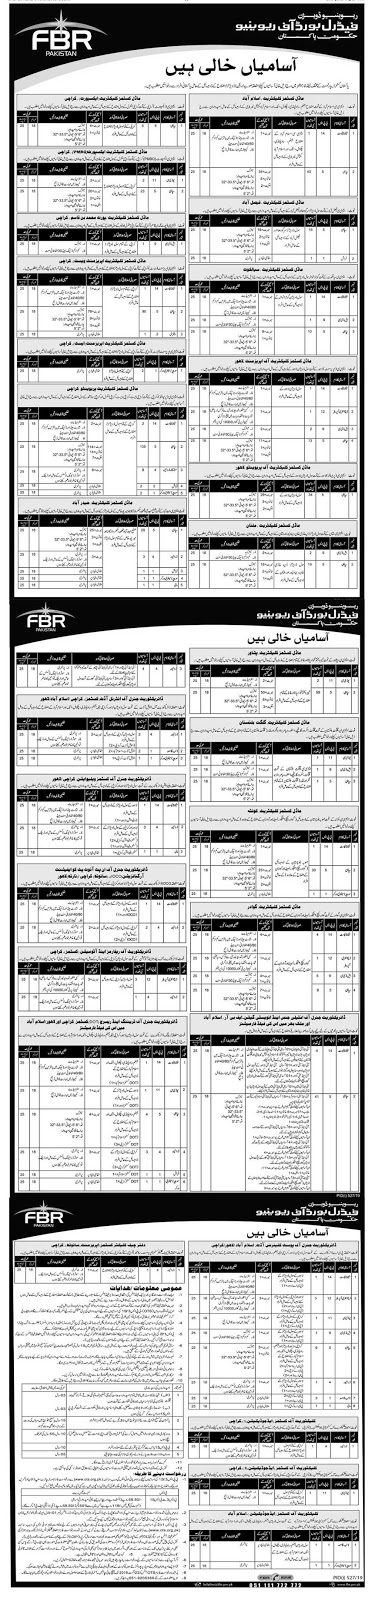 FBR Jobs July, FBR Jobs Islamabad, FBR Jobs 2019 OTS Application Form